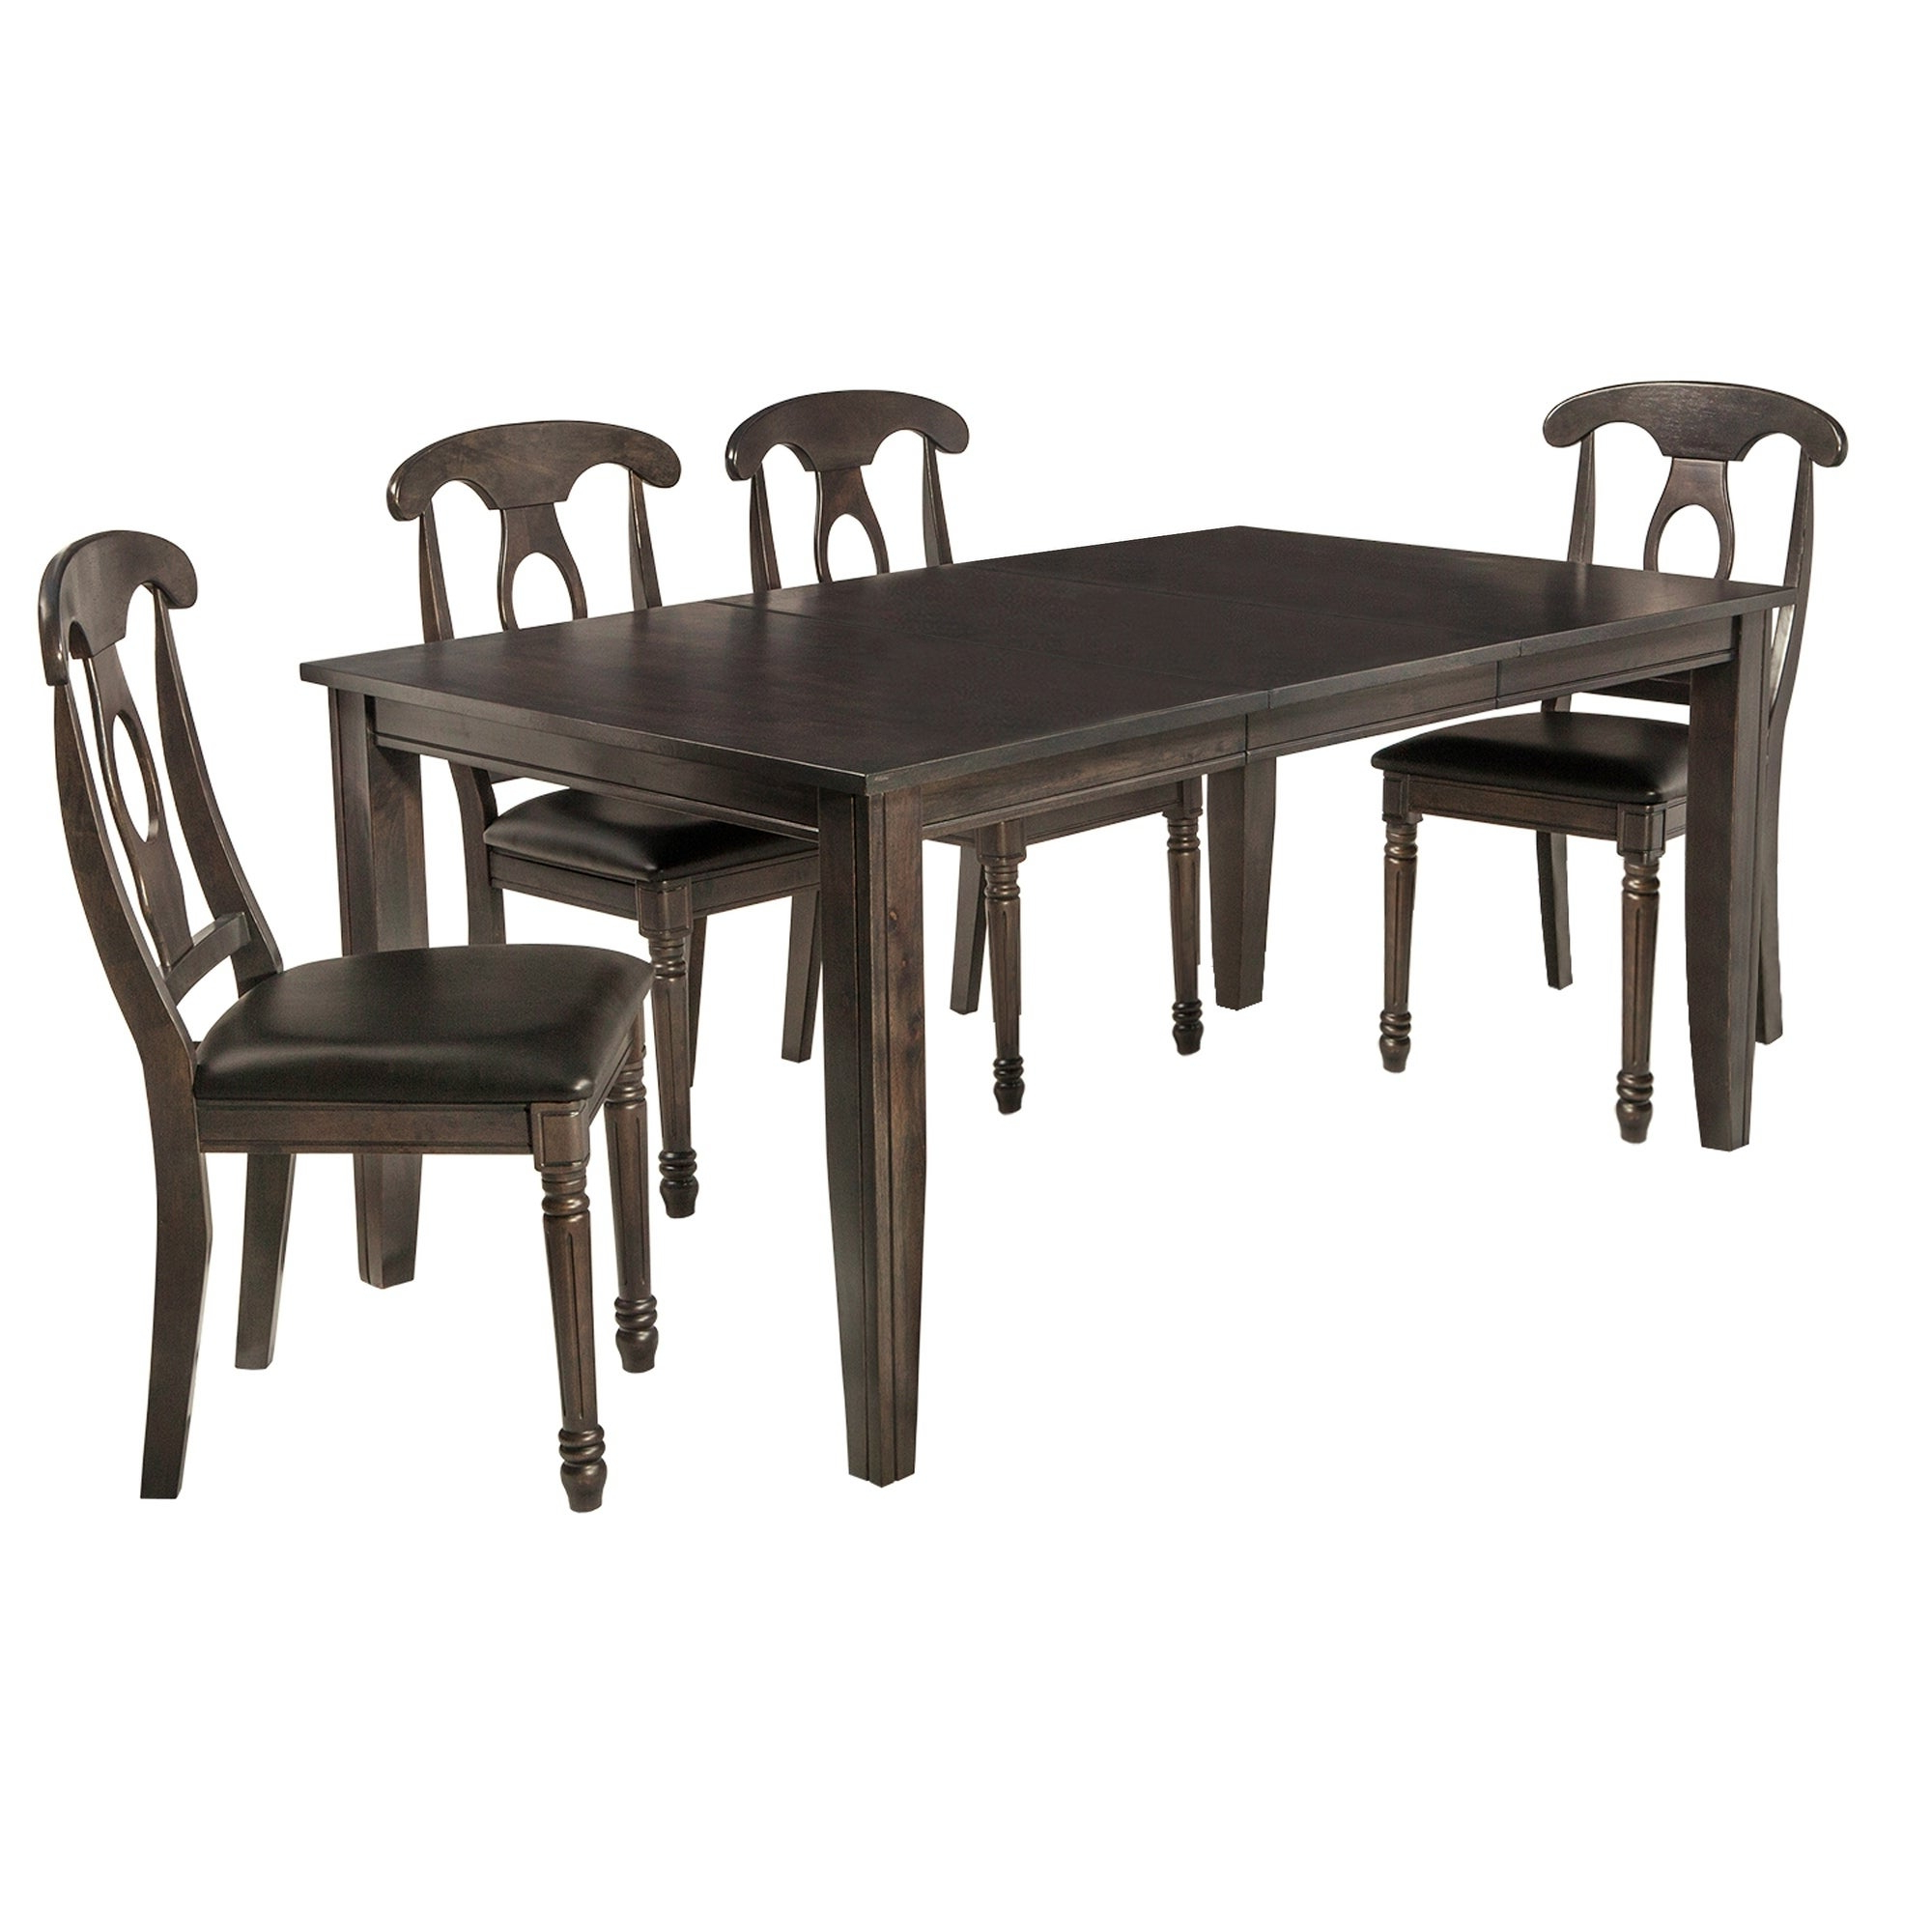 "5 Piece Solid Wood Dining Set ""aden"", Modern Kitchen Table Set, Dark Gray Throughout Latest Adan 5 Piece Solid Wood Dining Sets (Set Of 5) (Gallery 5 of 20)"